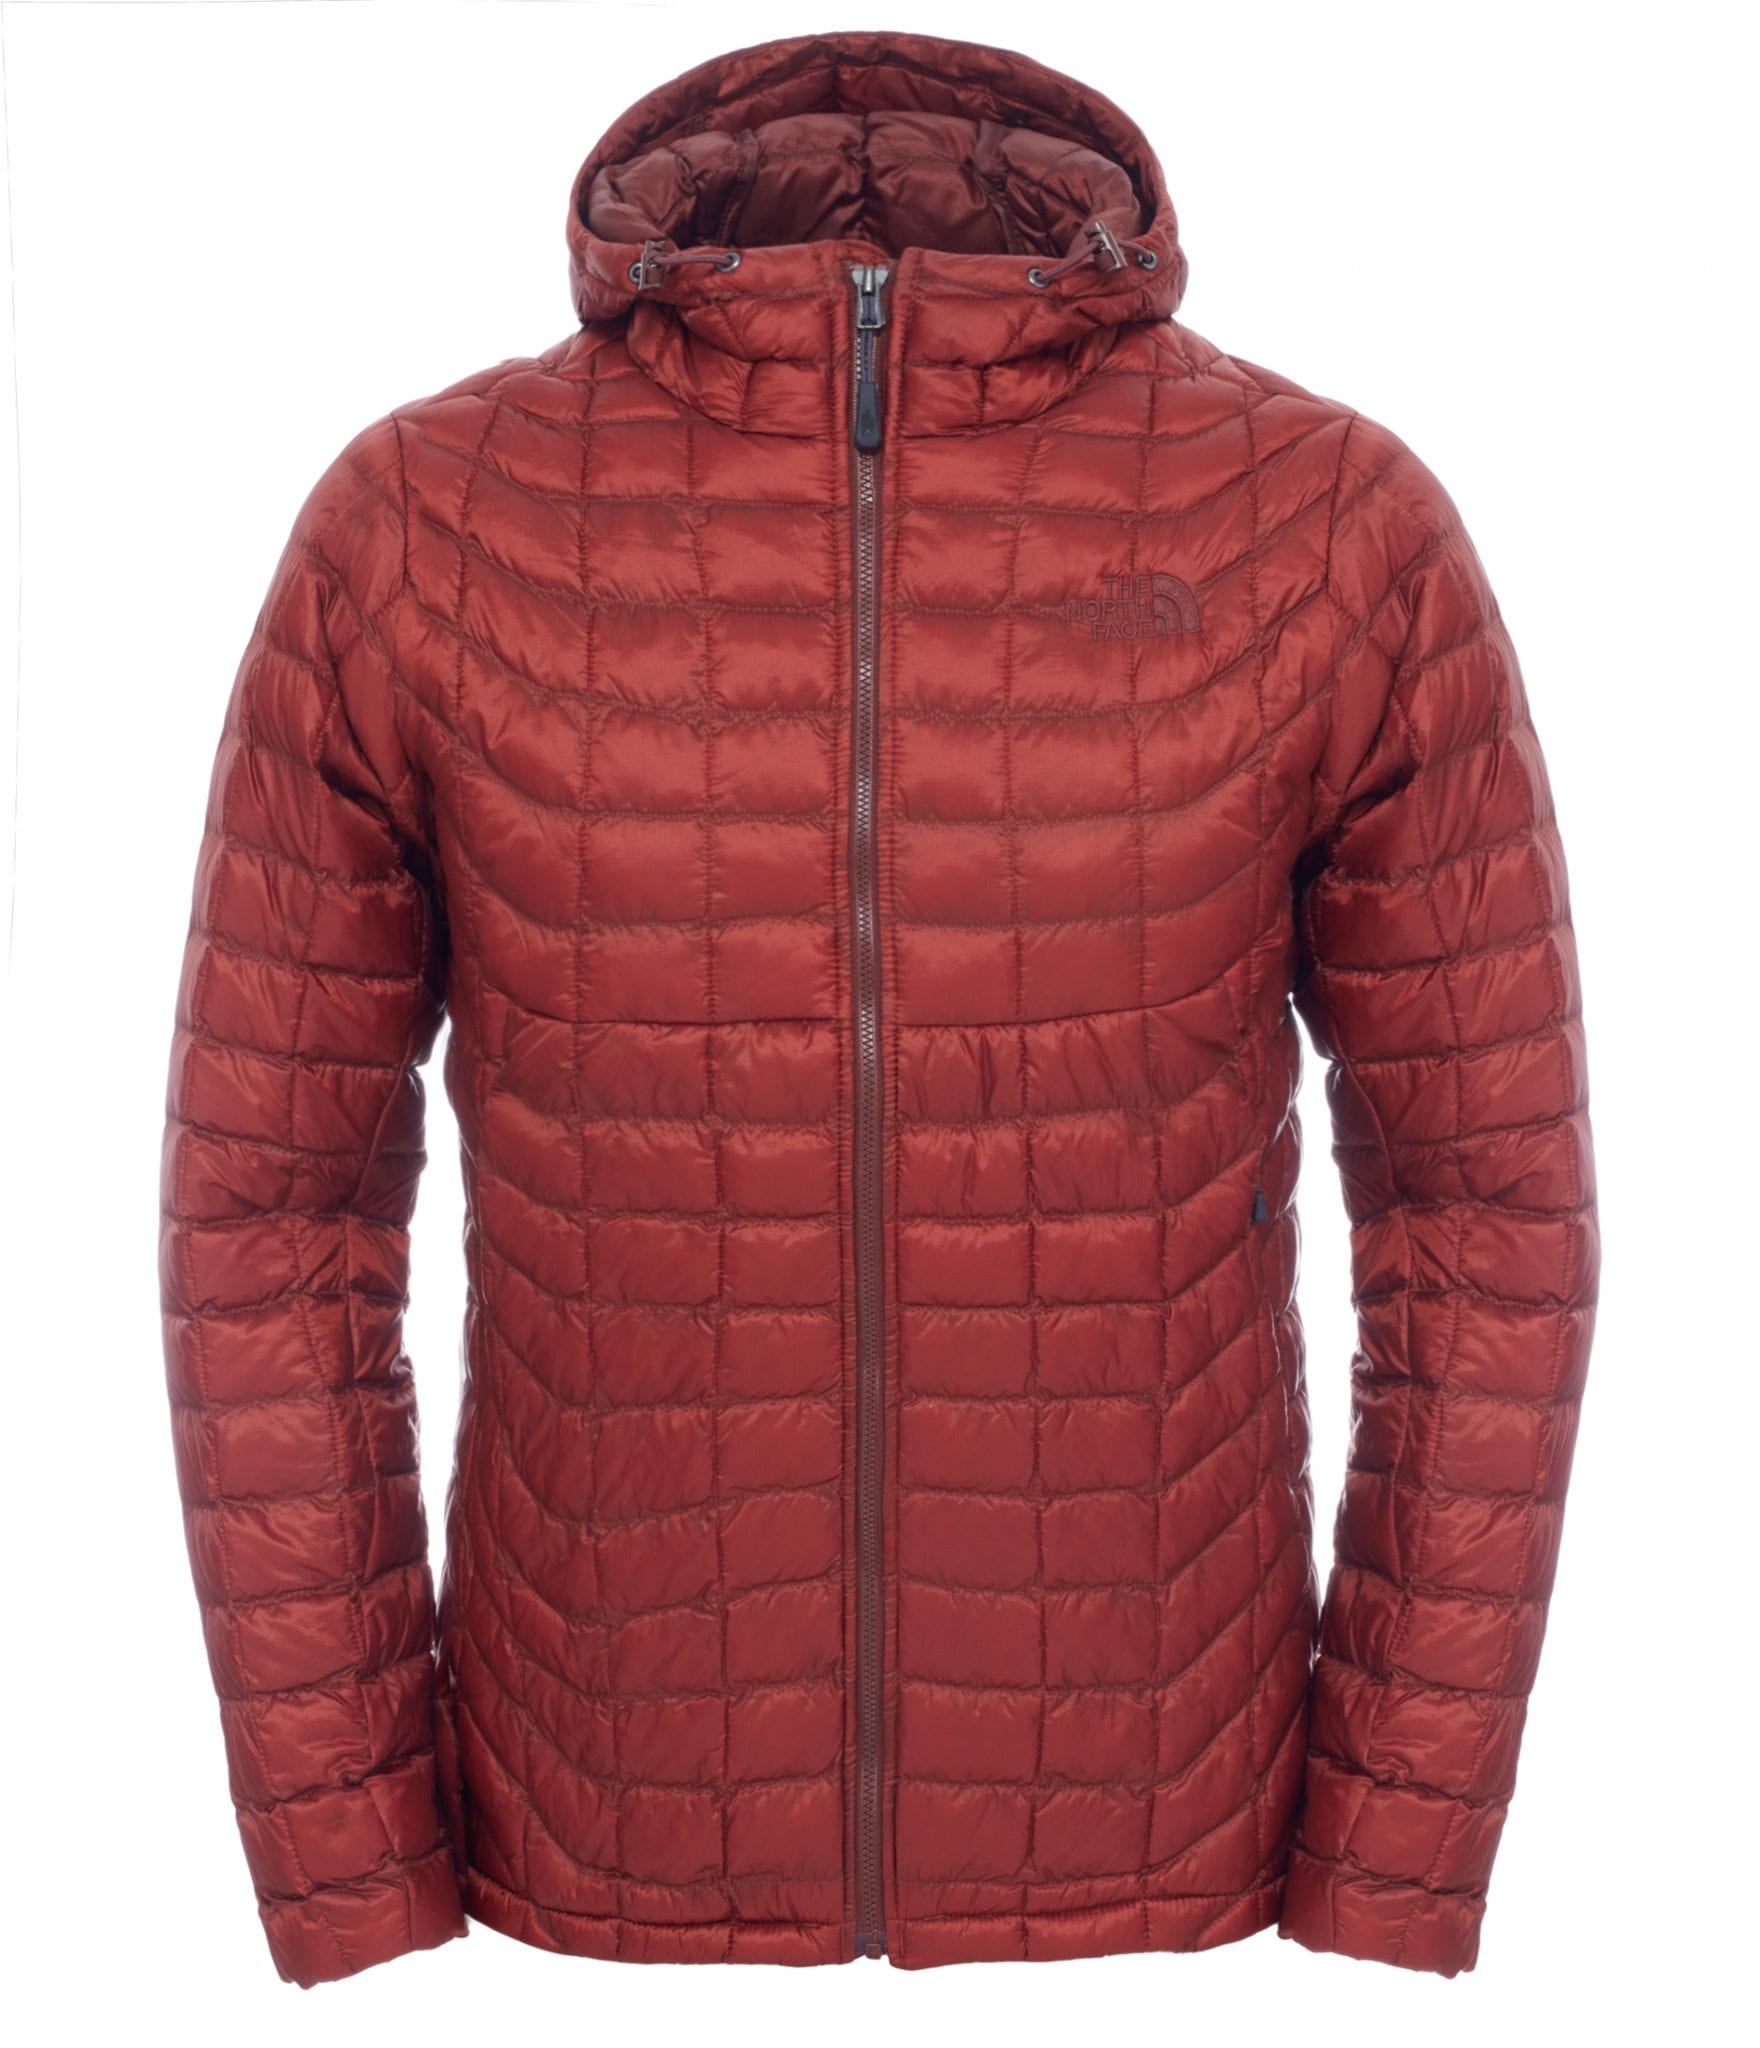 House North Brick Hoodie Red – The Redsequoia Thermoball™ Face xwz4fqFAFY 1c891fdab54a